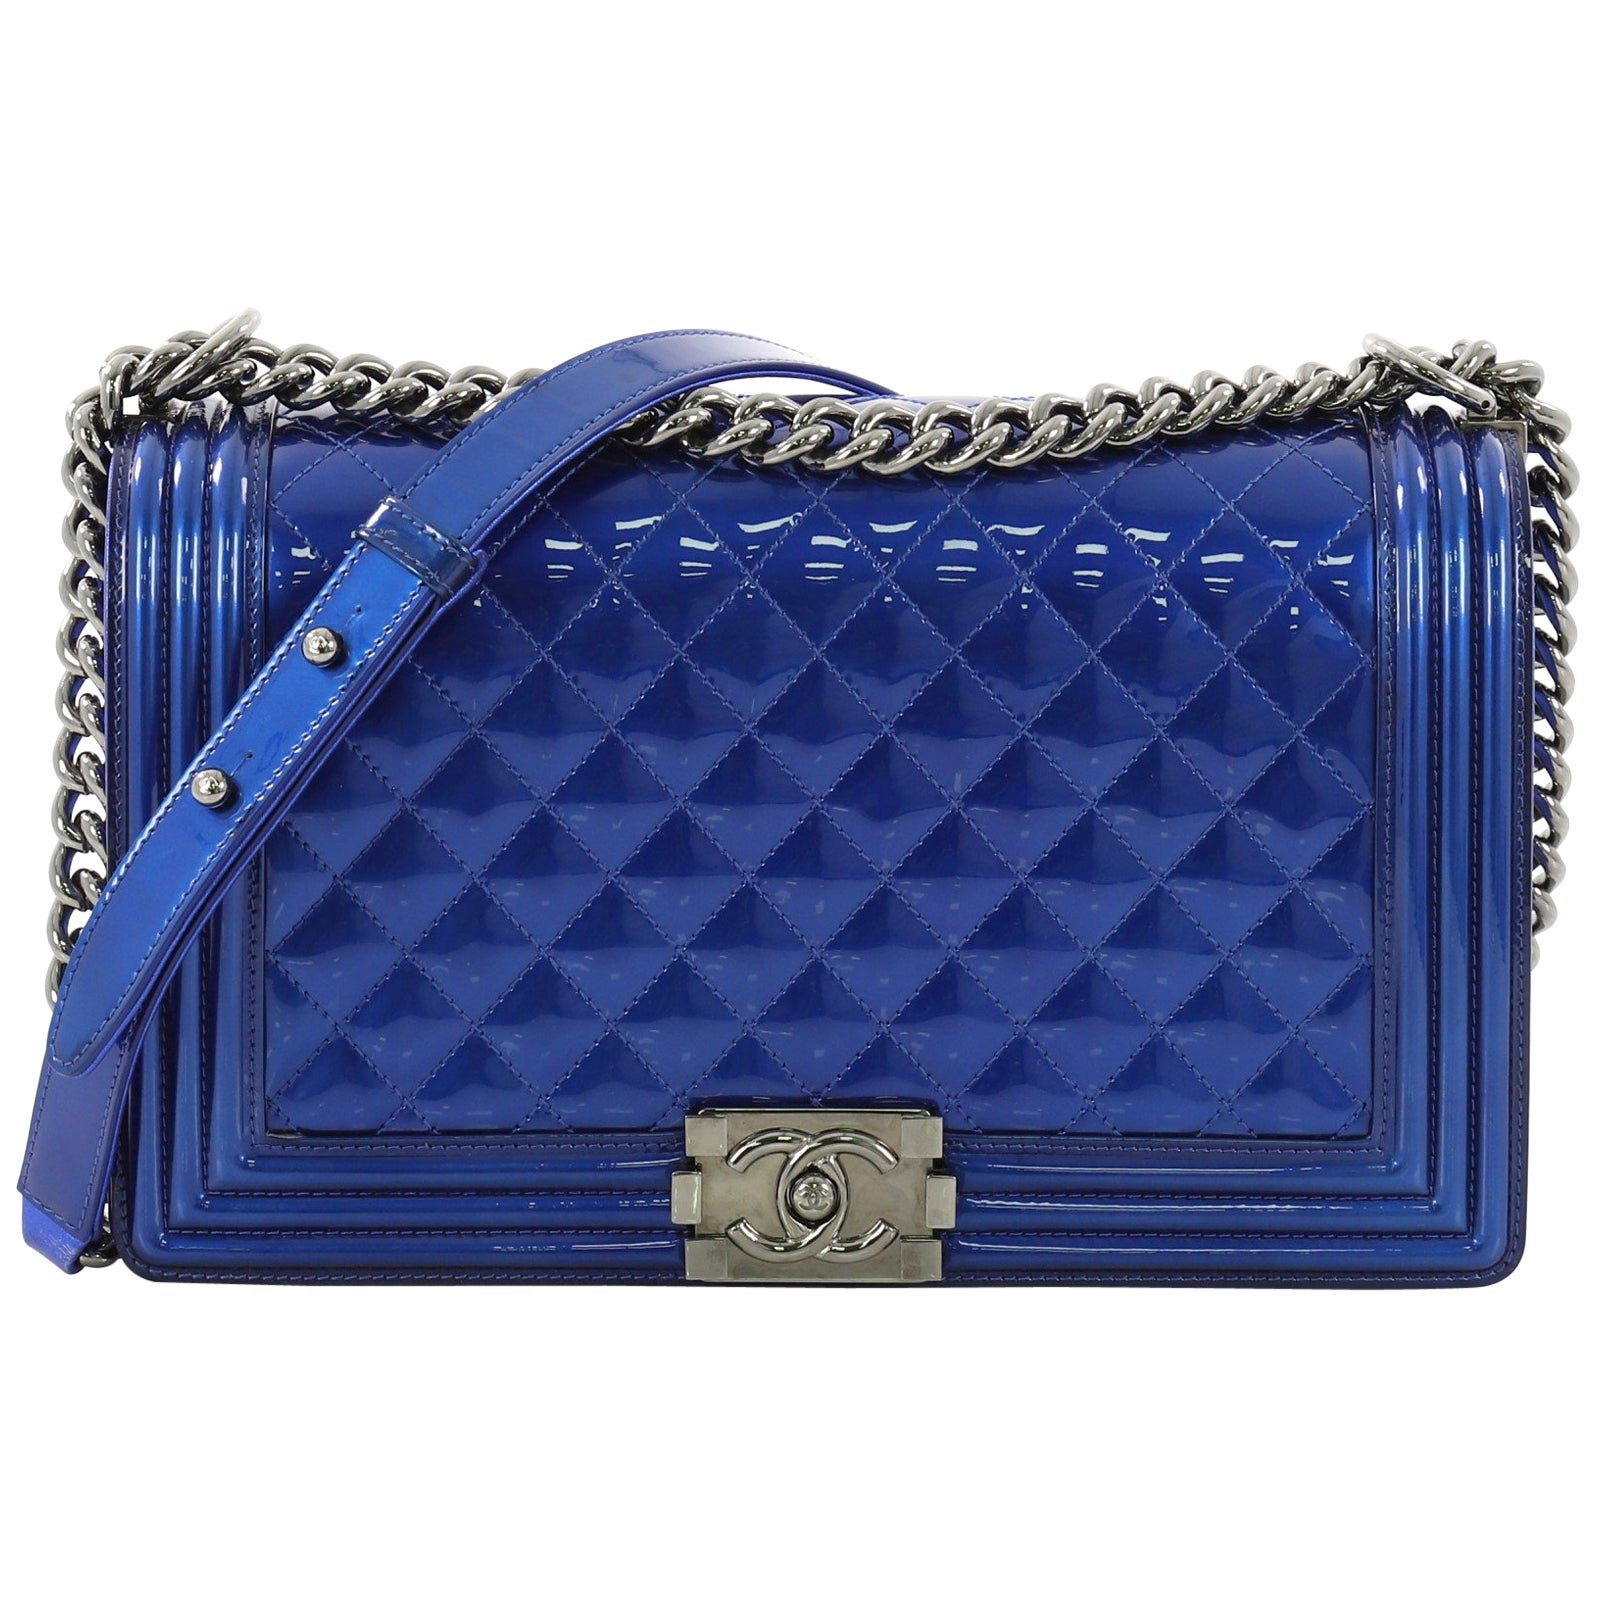 2c739ffd2ee0 Chanel Boy Flap Bag Quilted Patent New Medium at 1stdibs